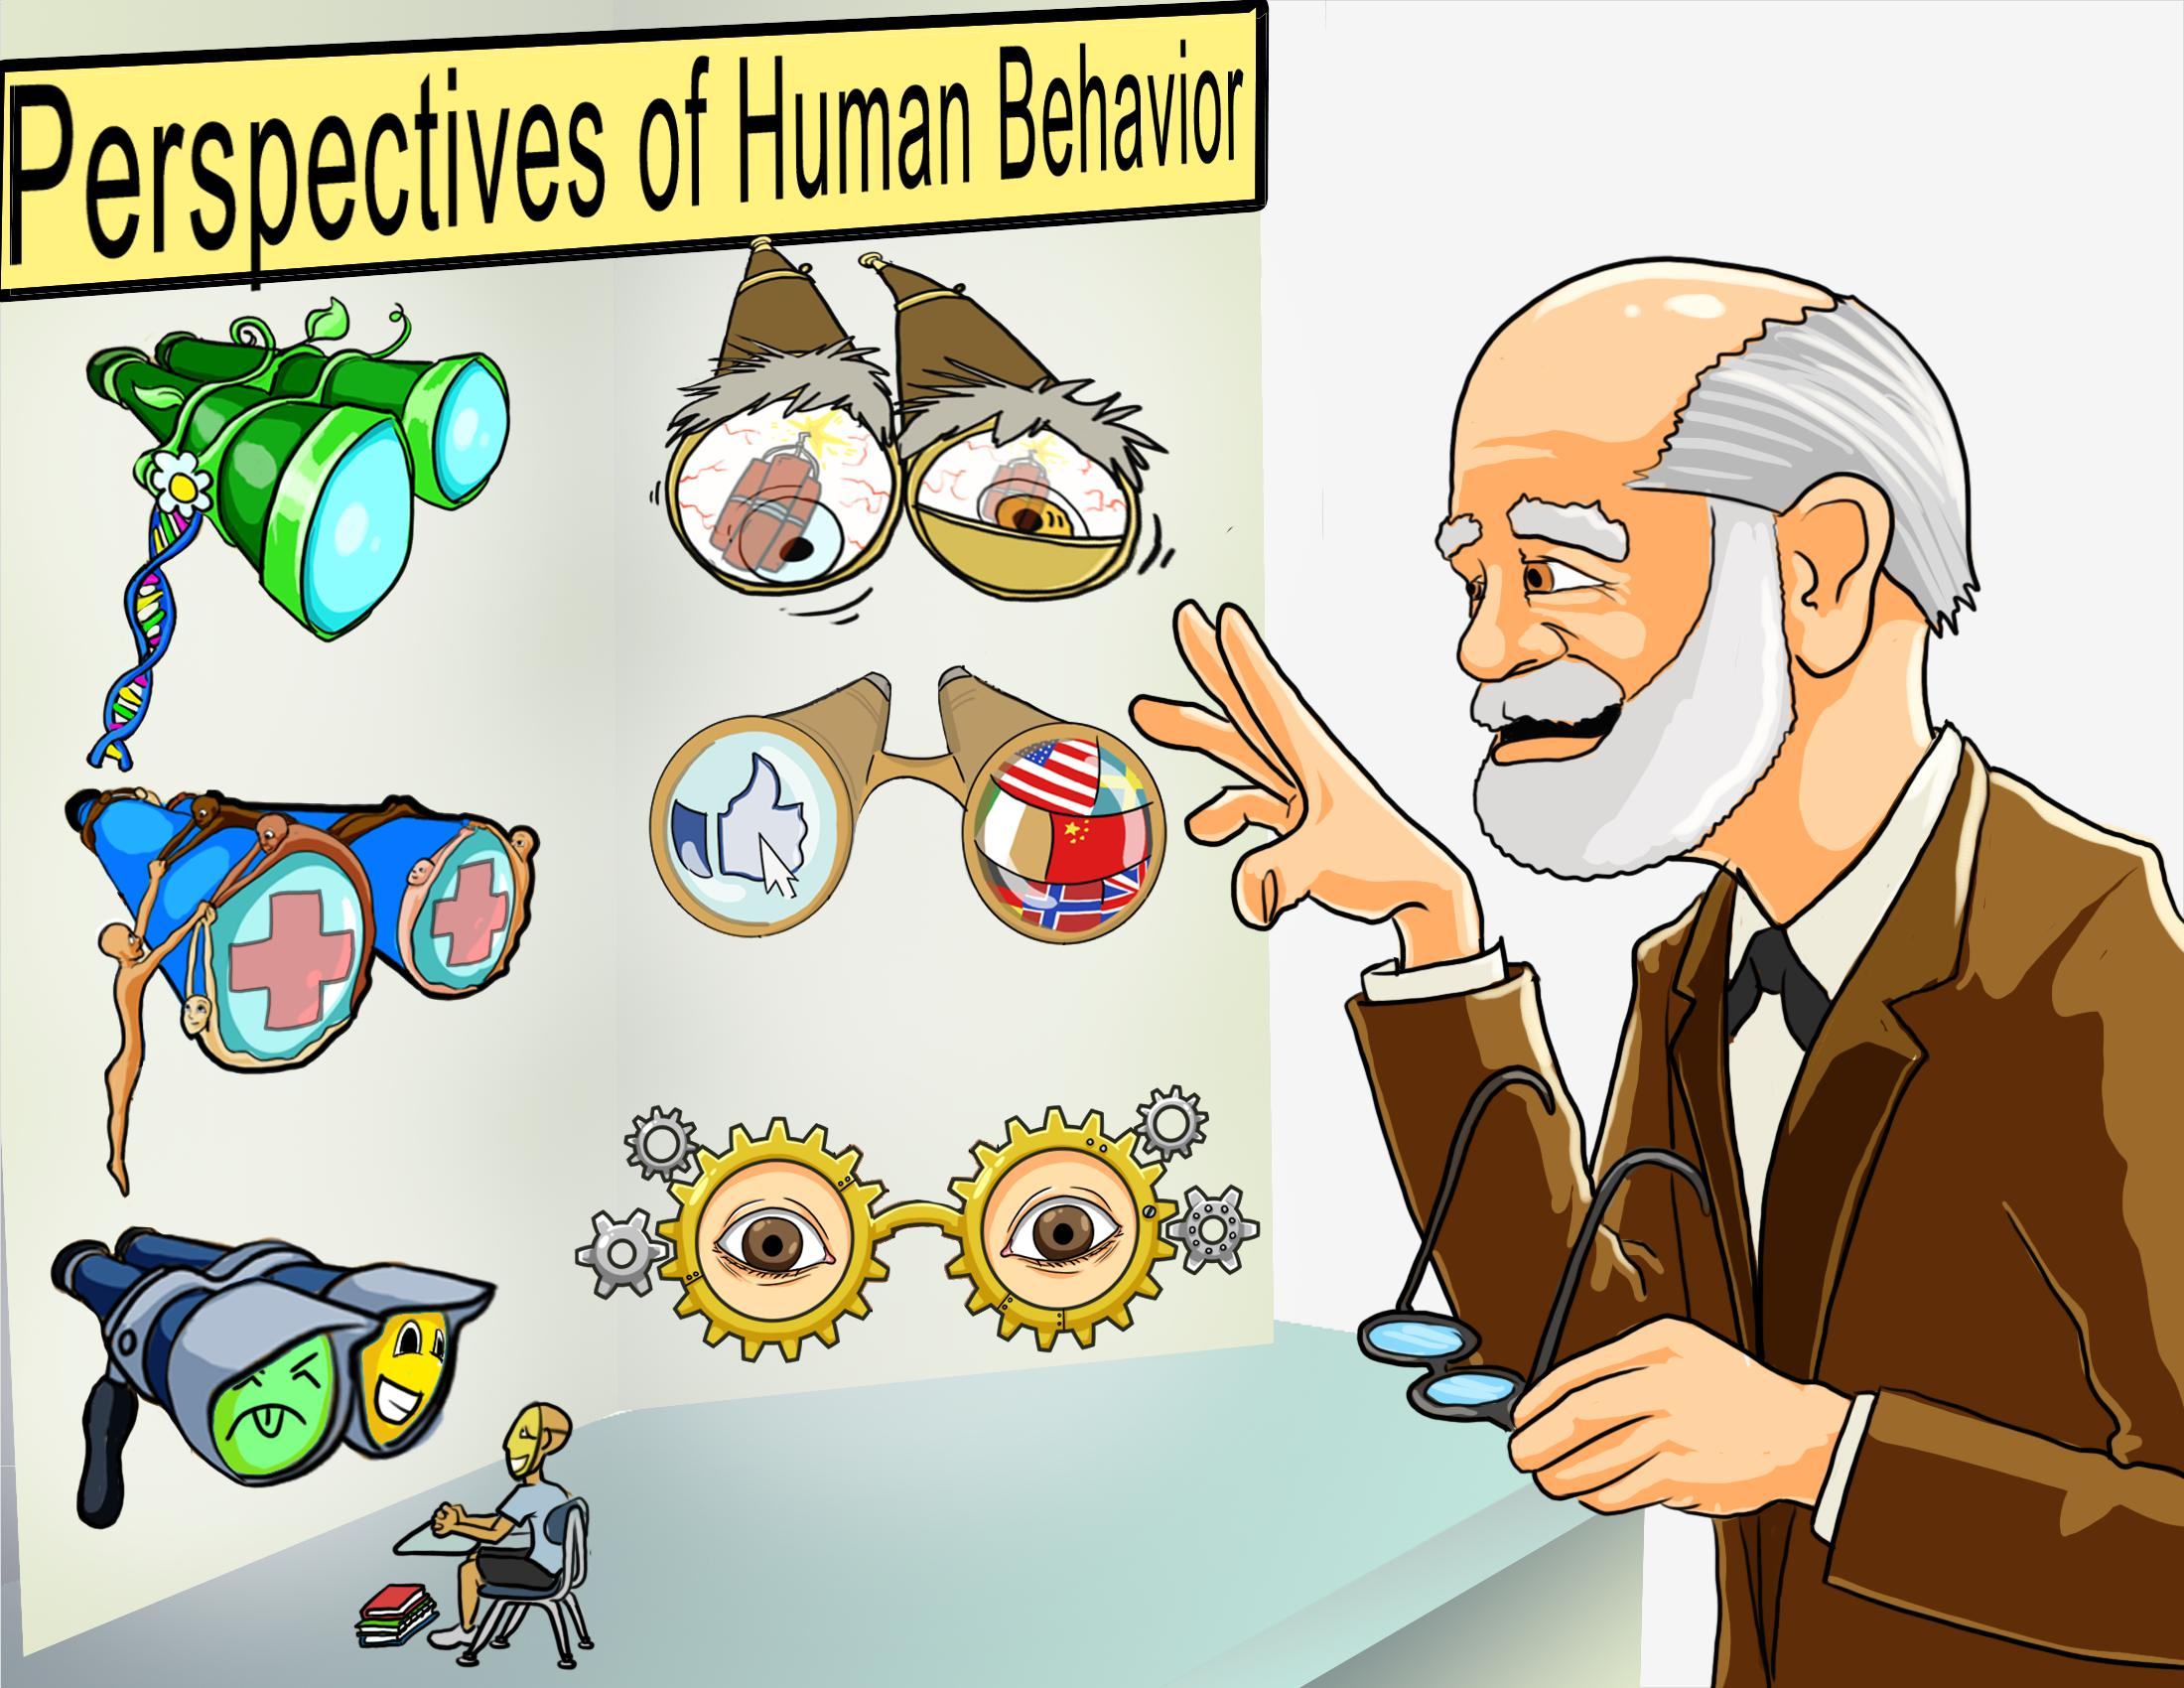 Perspectives of Human Behavior (Overview)